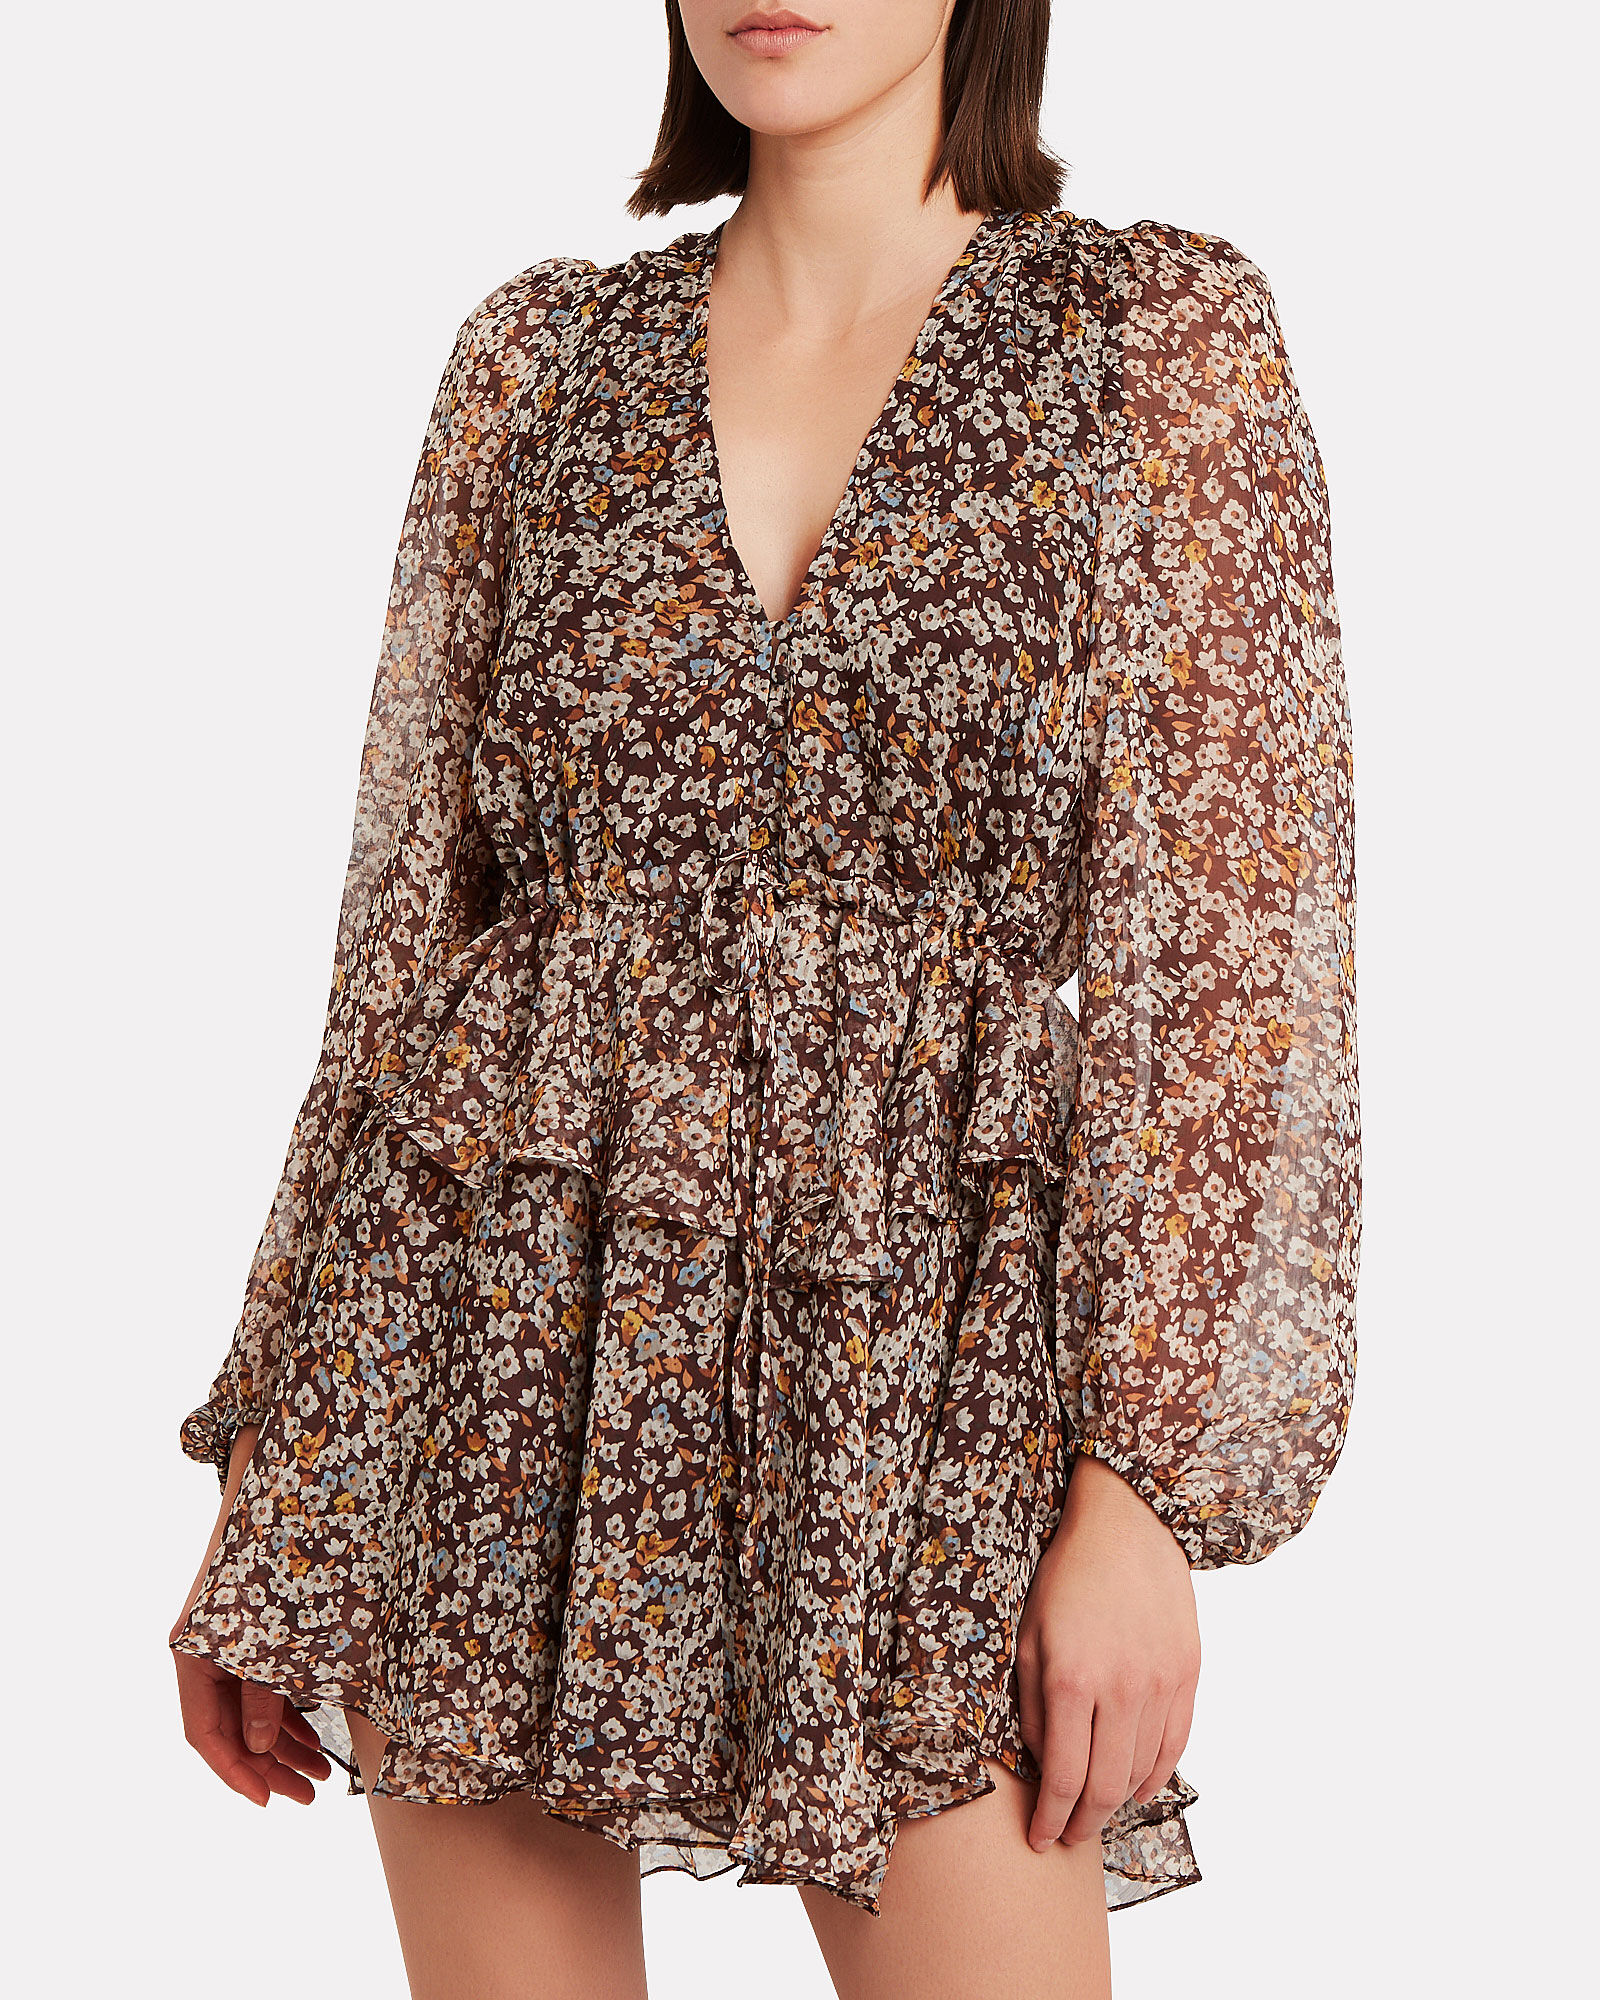 Garner Floral Chiffon Mini Dress, MULTI, hi-res